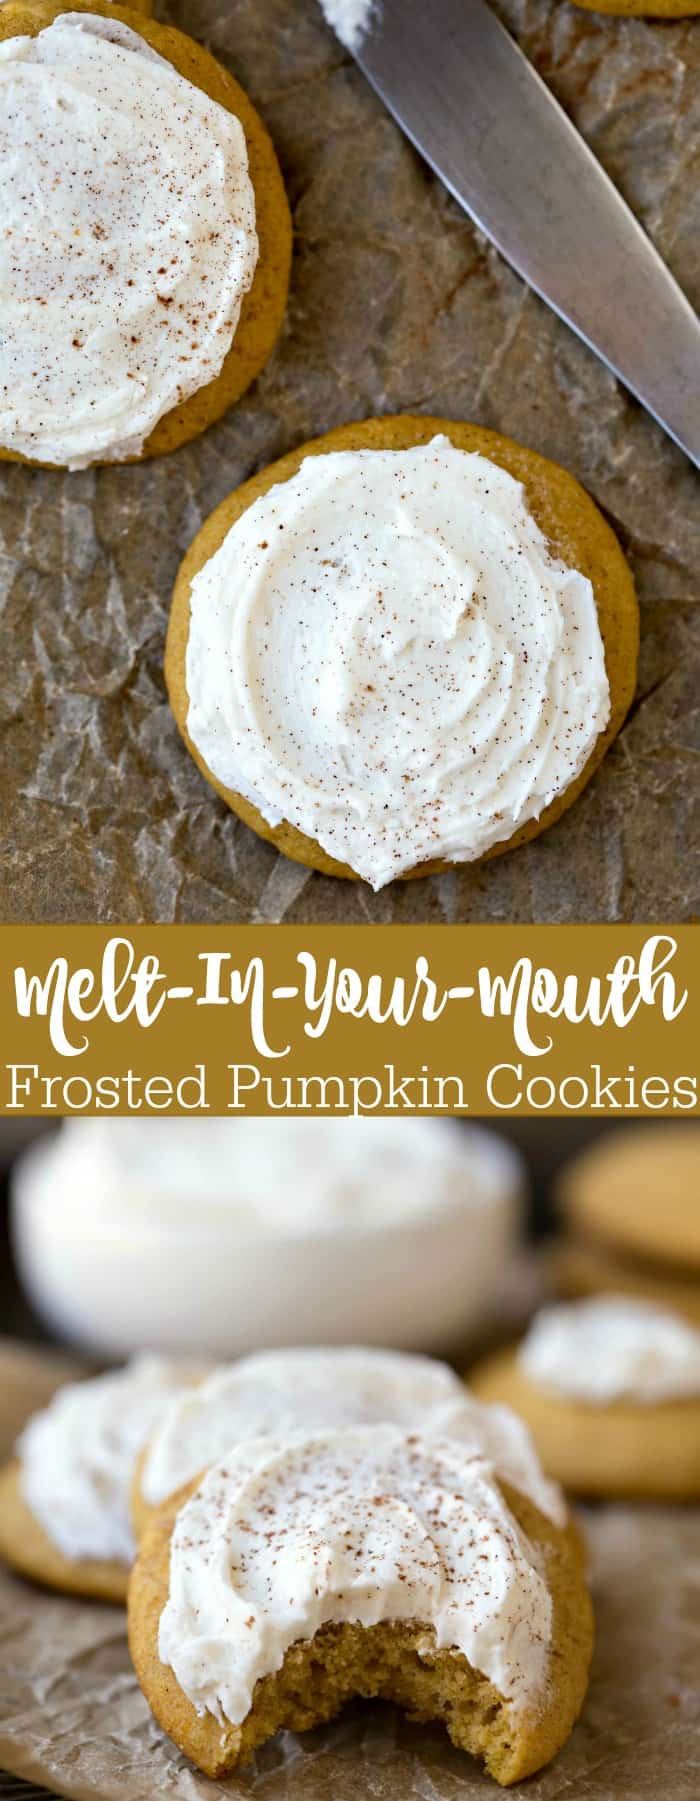 Melt-In-Your-Mouth Frosted Pumpkin Cookie Recipe